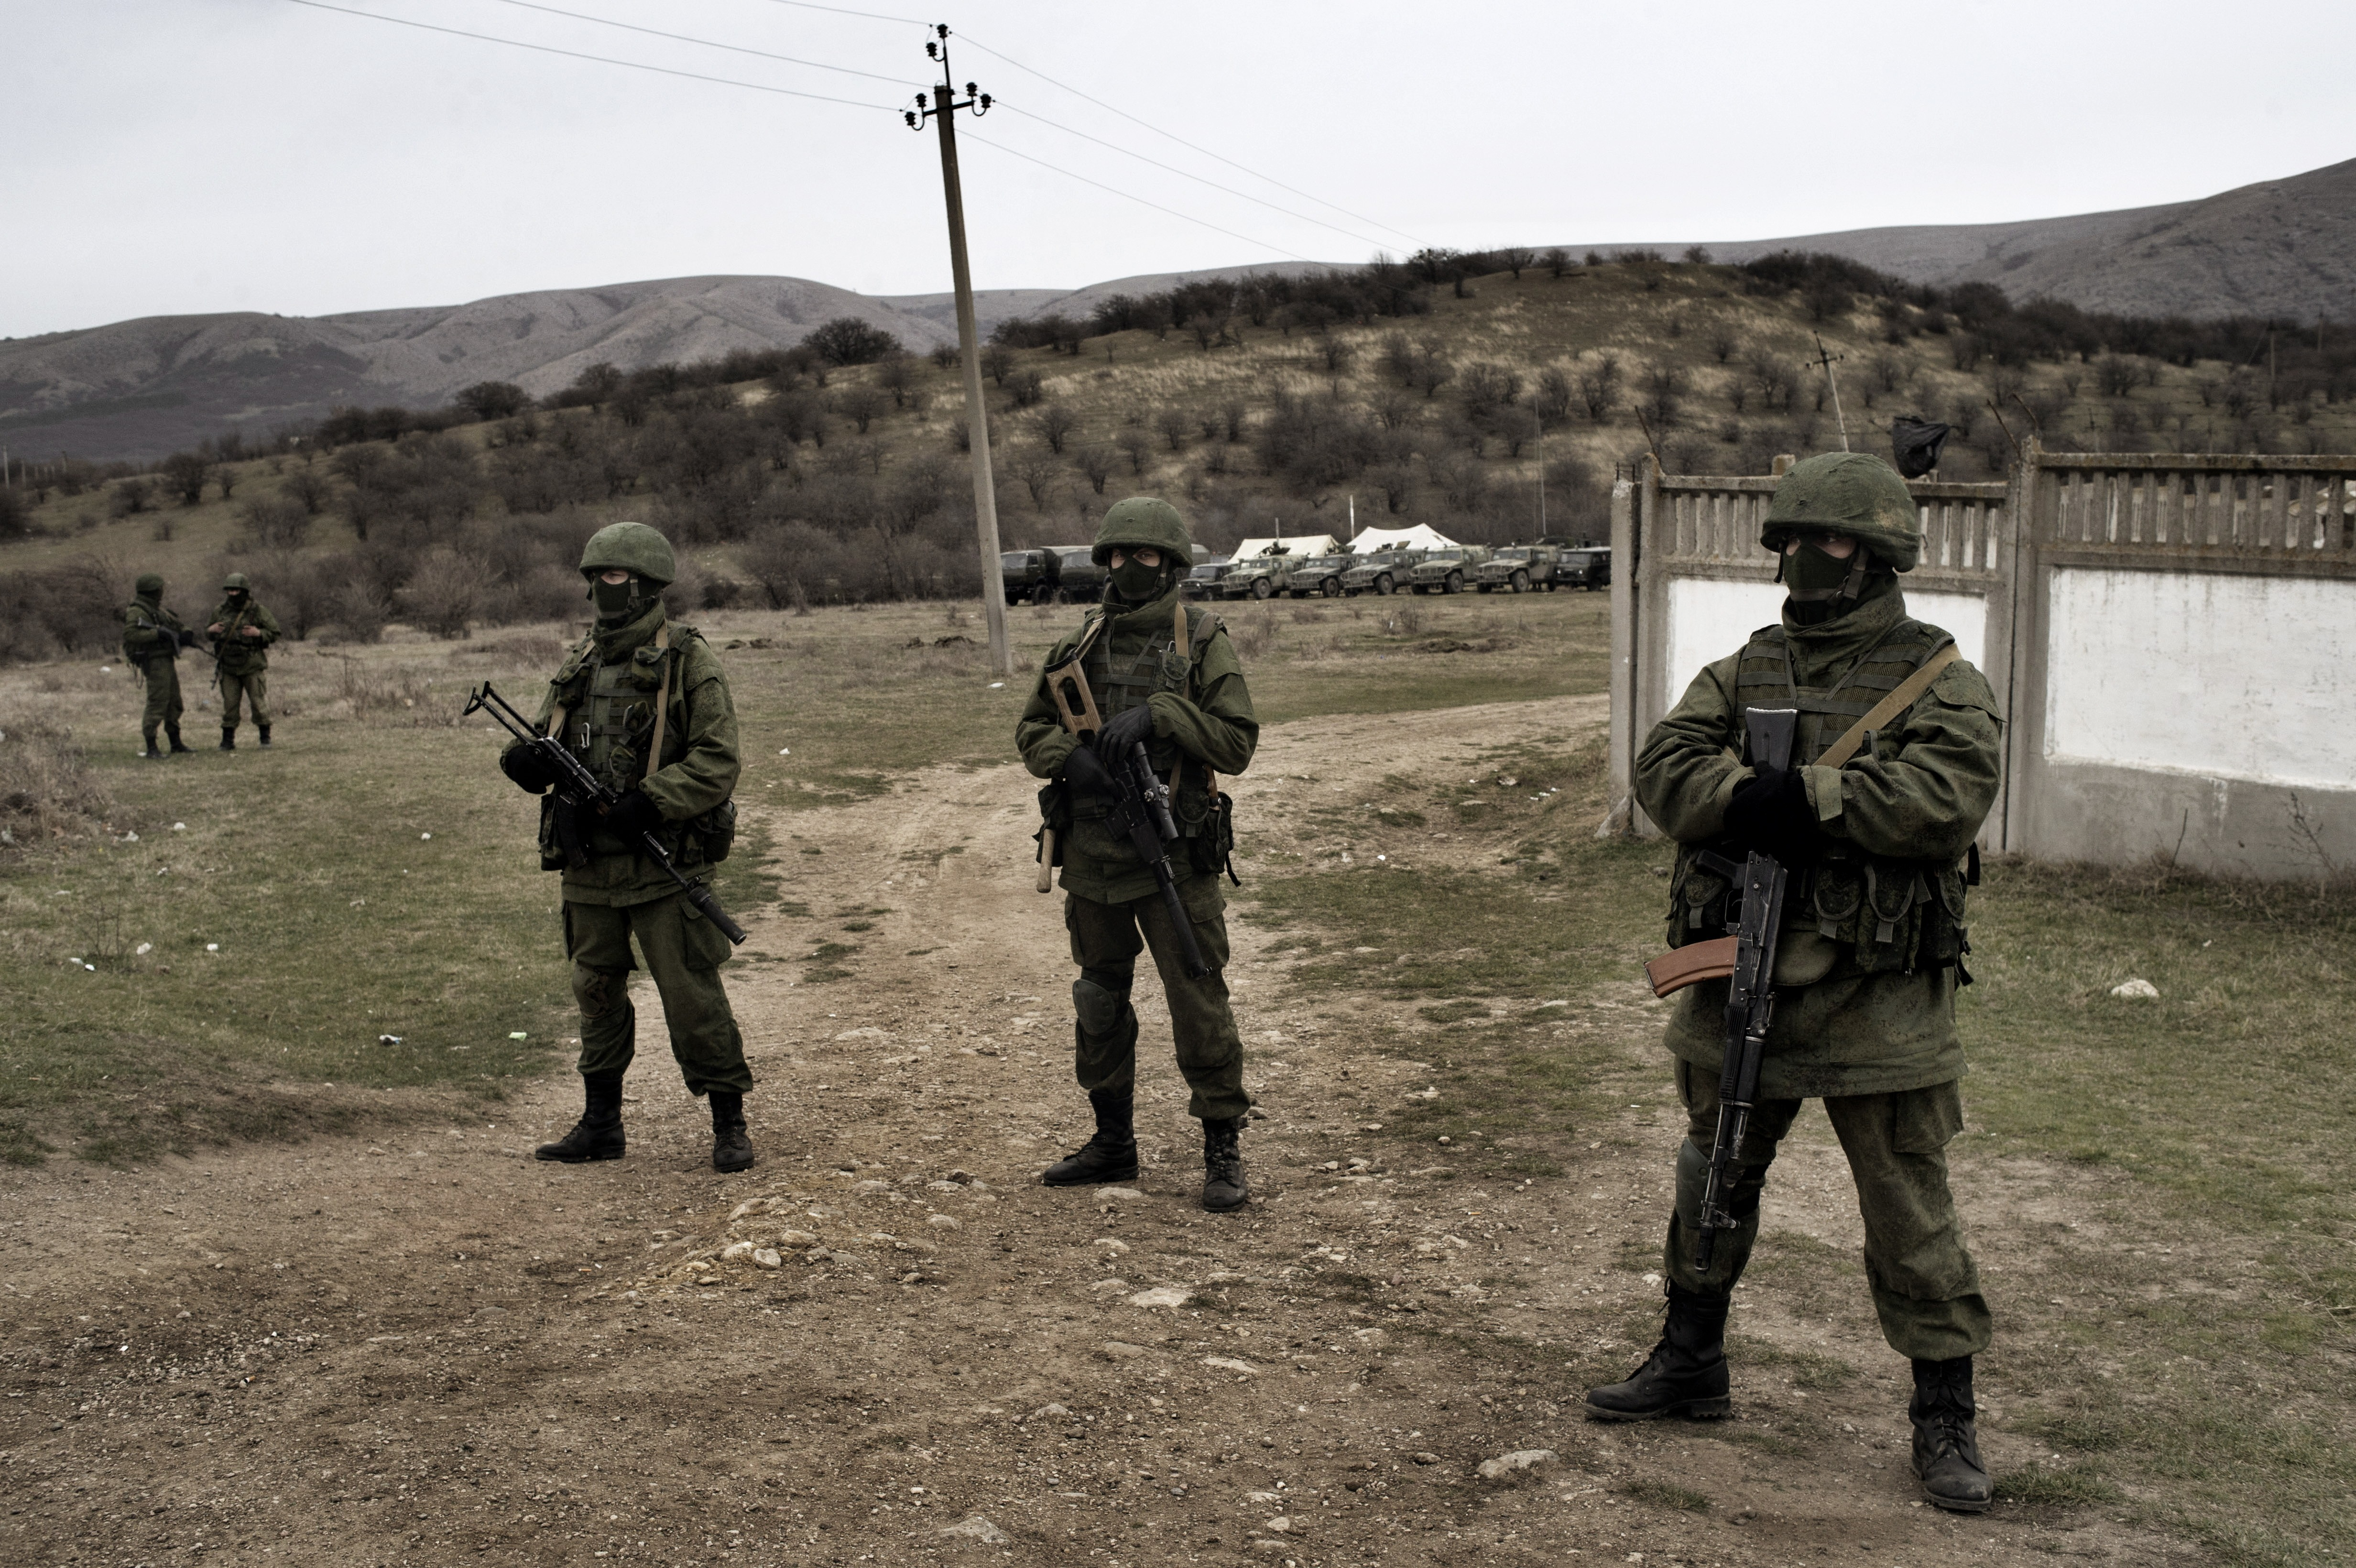 Some heavily armed soldiers without insignia had taken up positions around small Ukrainian military bases, but did not try to enter them, in Perevalnoye, Ukraine on March, 4 2014.